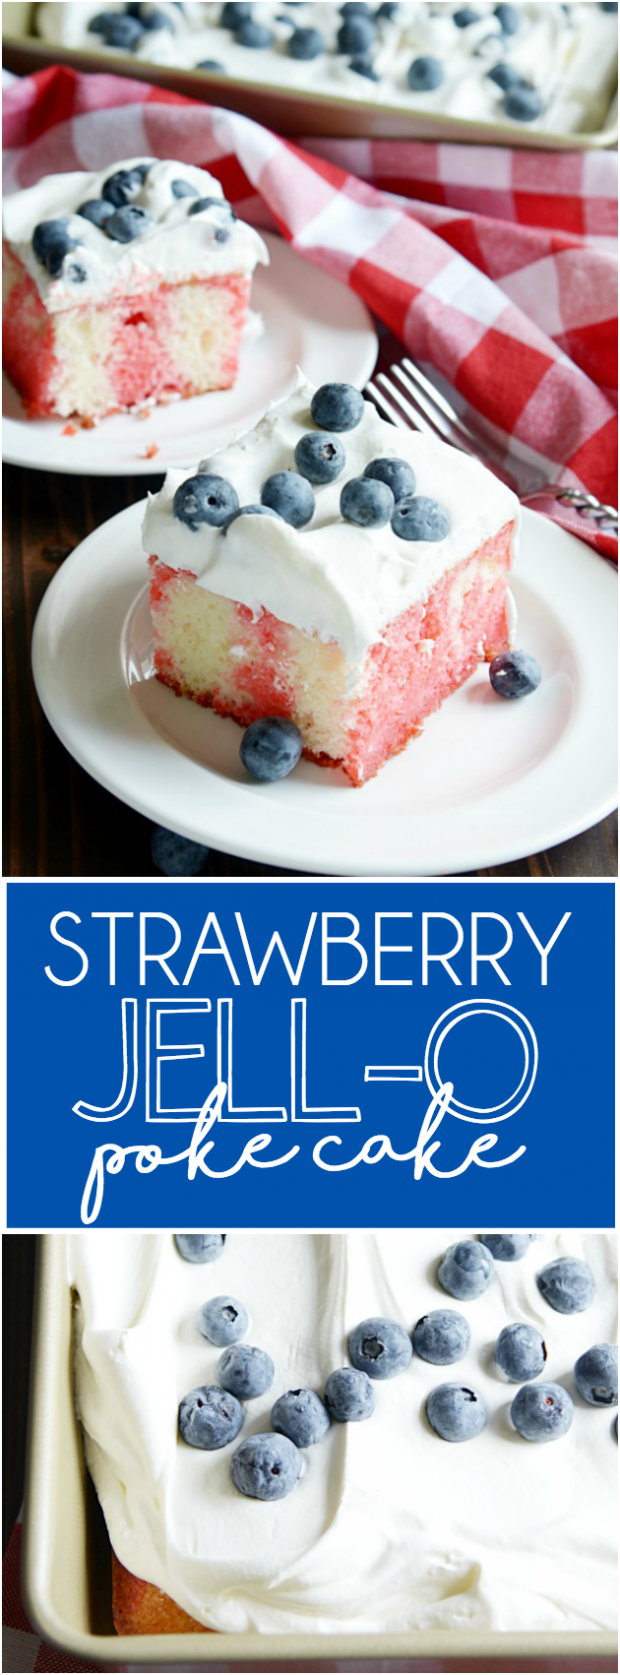 This is the ultimate summer cake! White sheet cake soaked through with strawberry Jell-O, and smothered in Cool Whip. No bake perfection :)